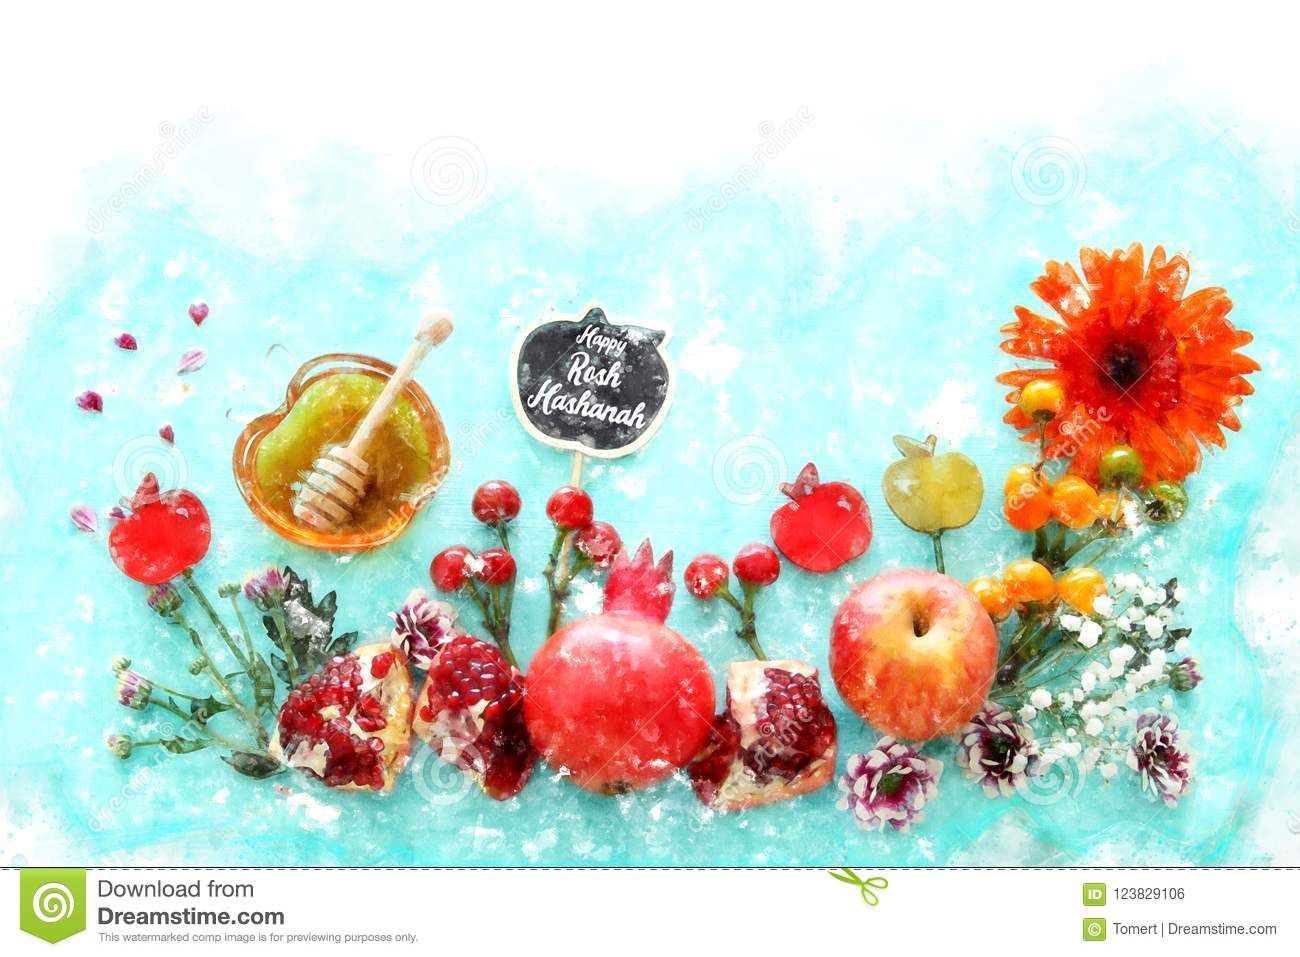 Watercolor Style And Abstract Image Of Rosh Hashanah Jewish New Year